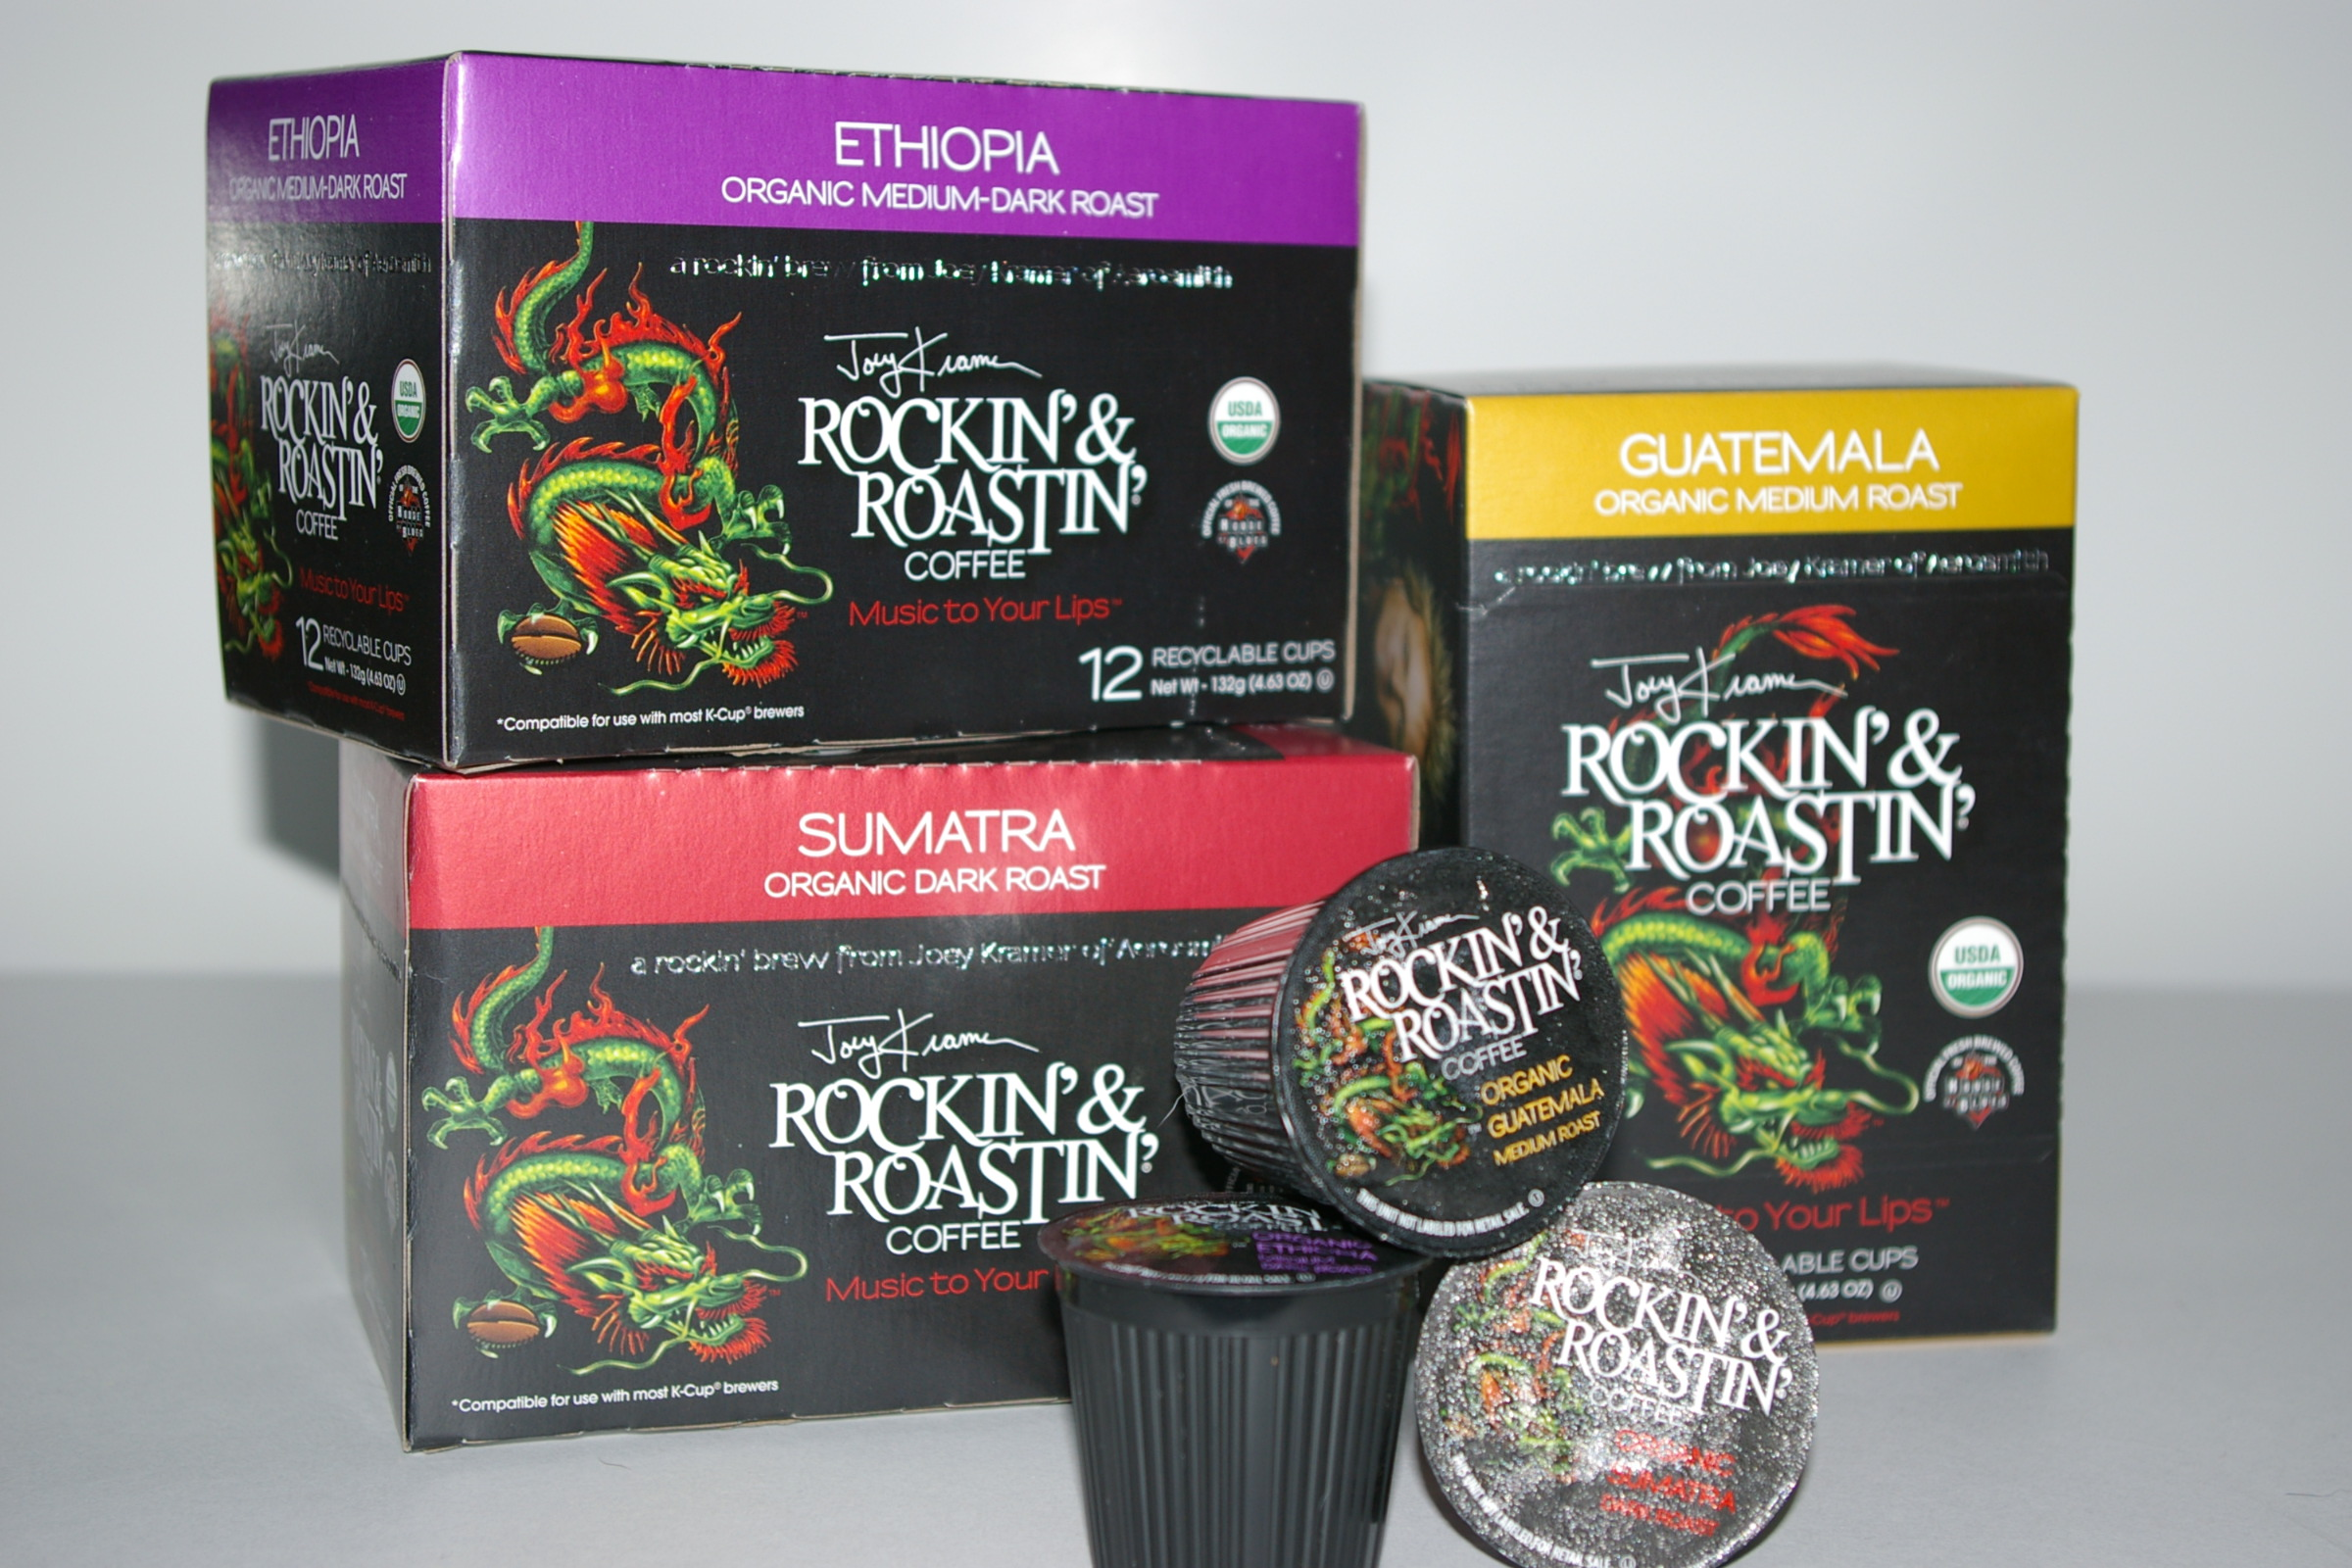 Rockin' & Roastin' - Single Serve Cups (2)